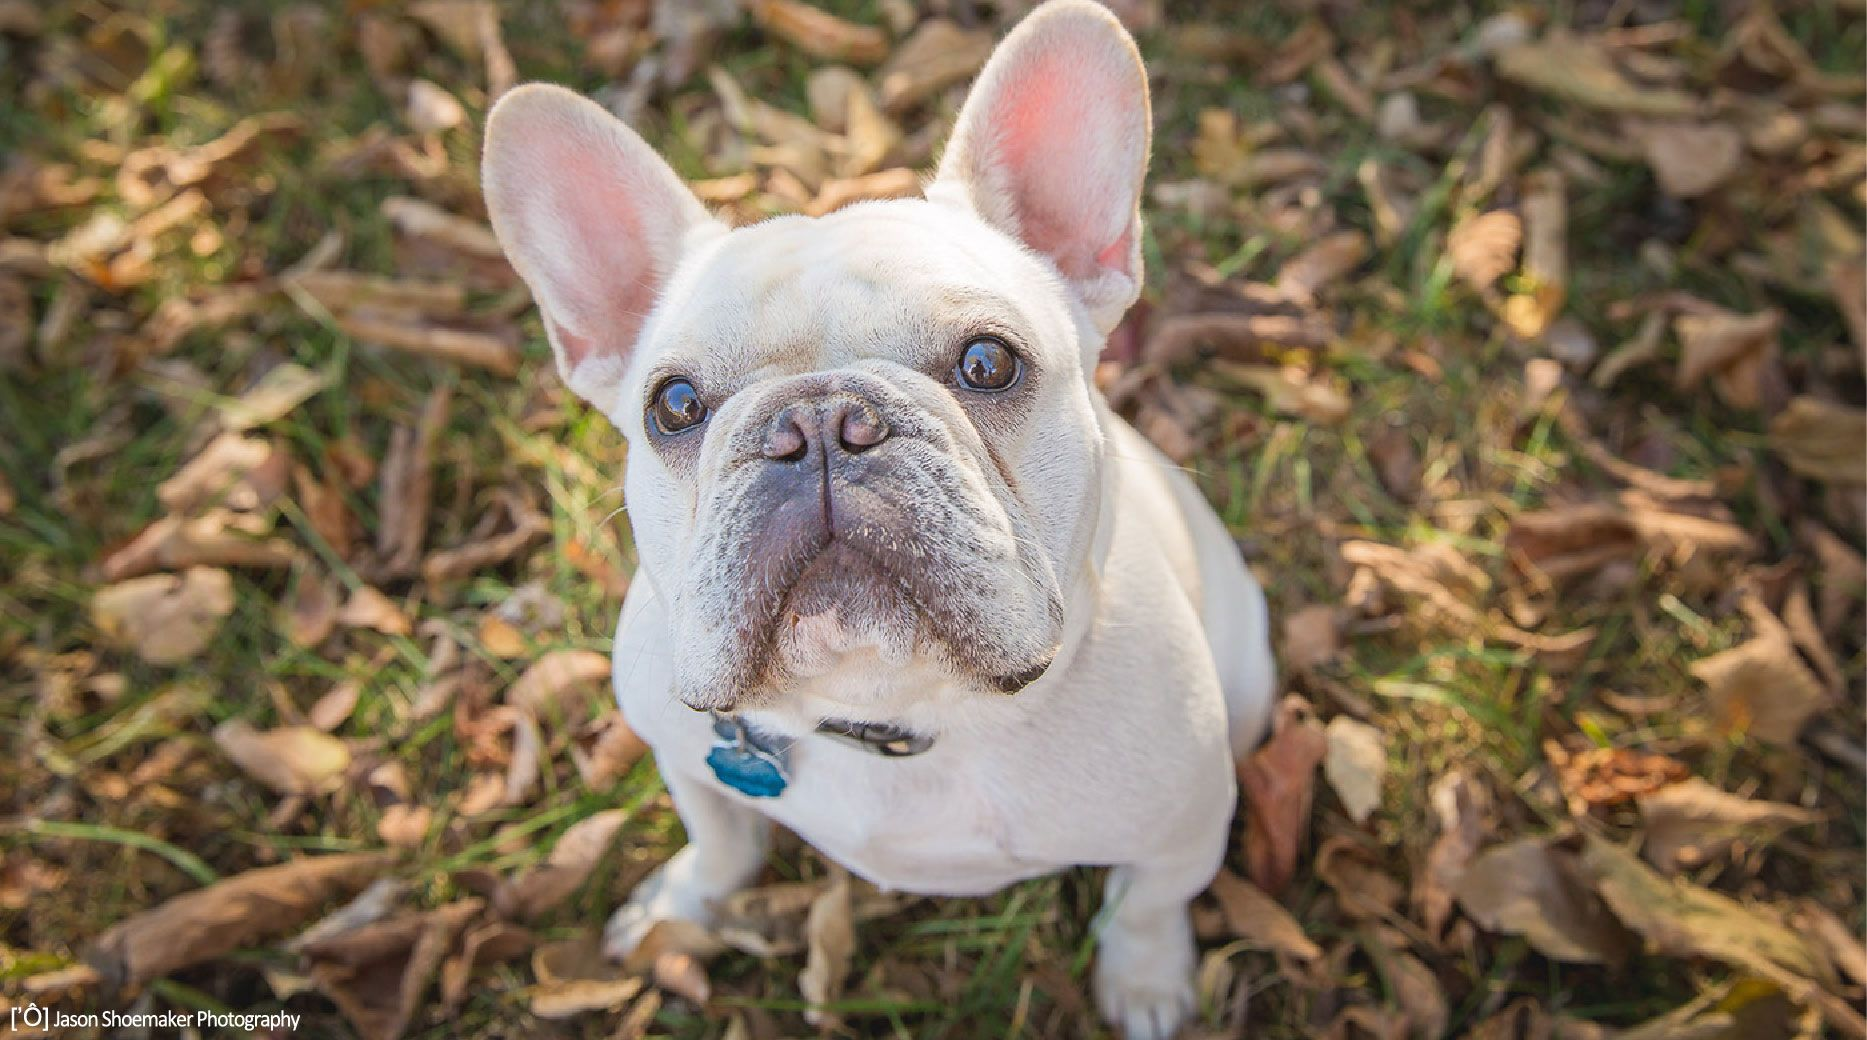 Busy Paws Llc Offers Pet Sitting And Taxiing And Dog Walking To Families In Kansas City Dog Walking Pets Dogs